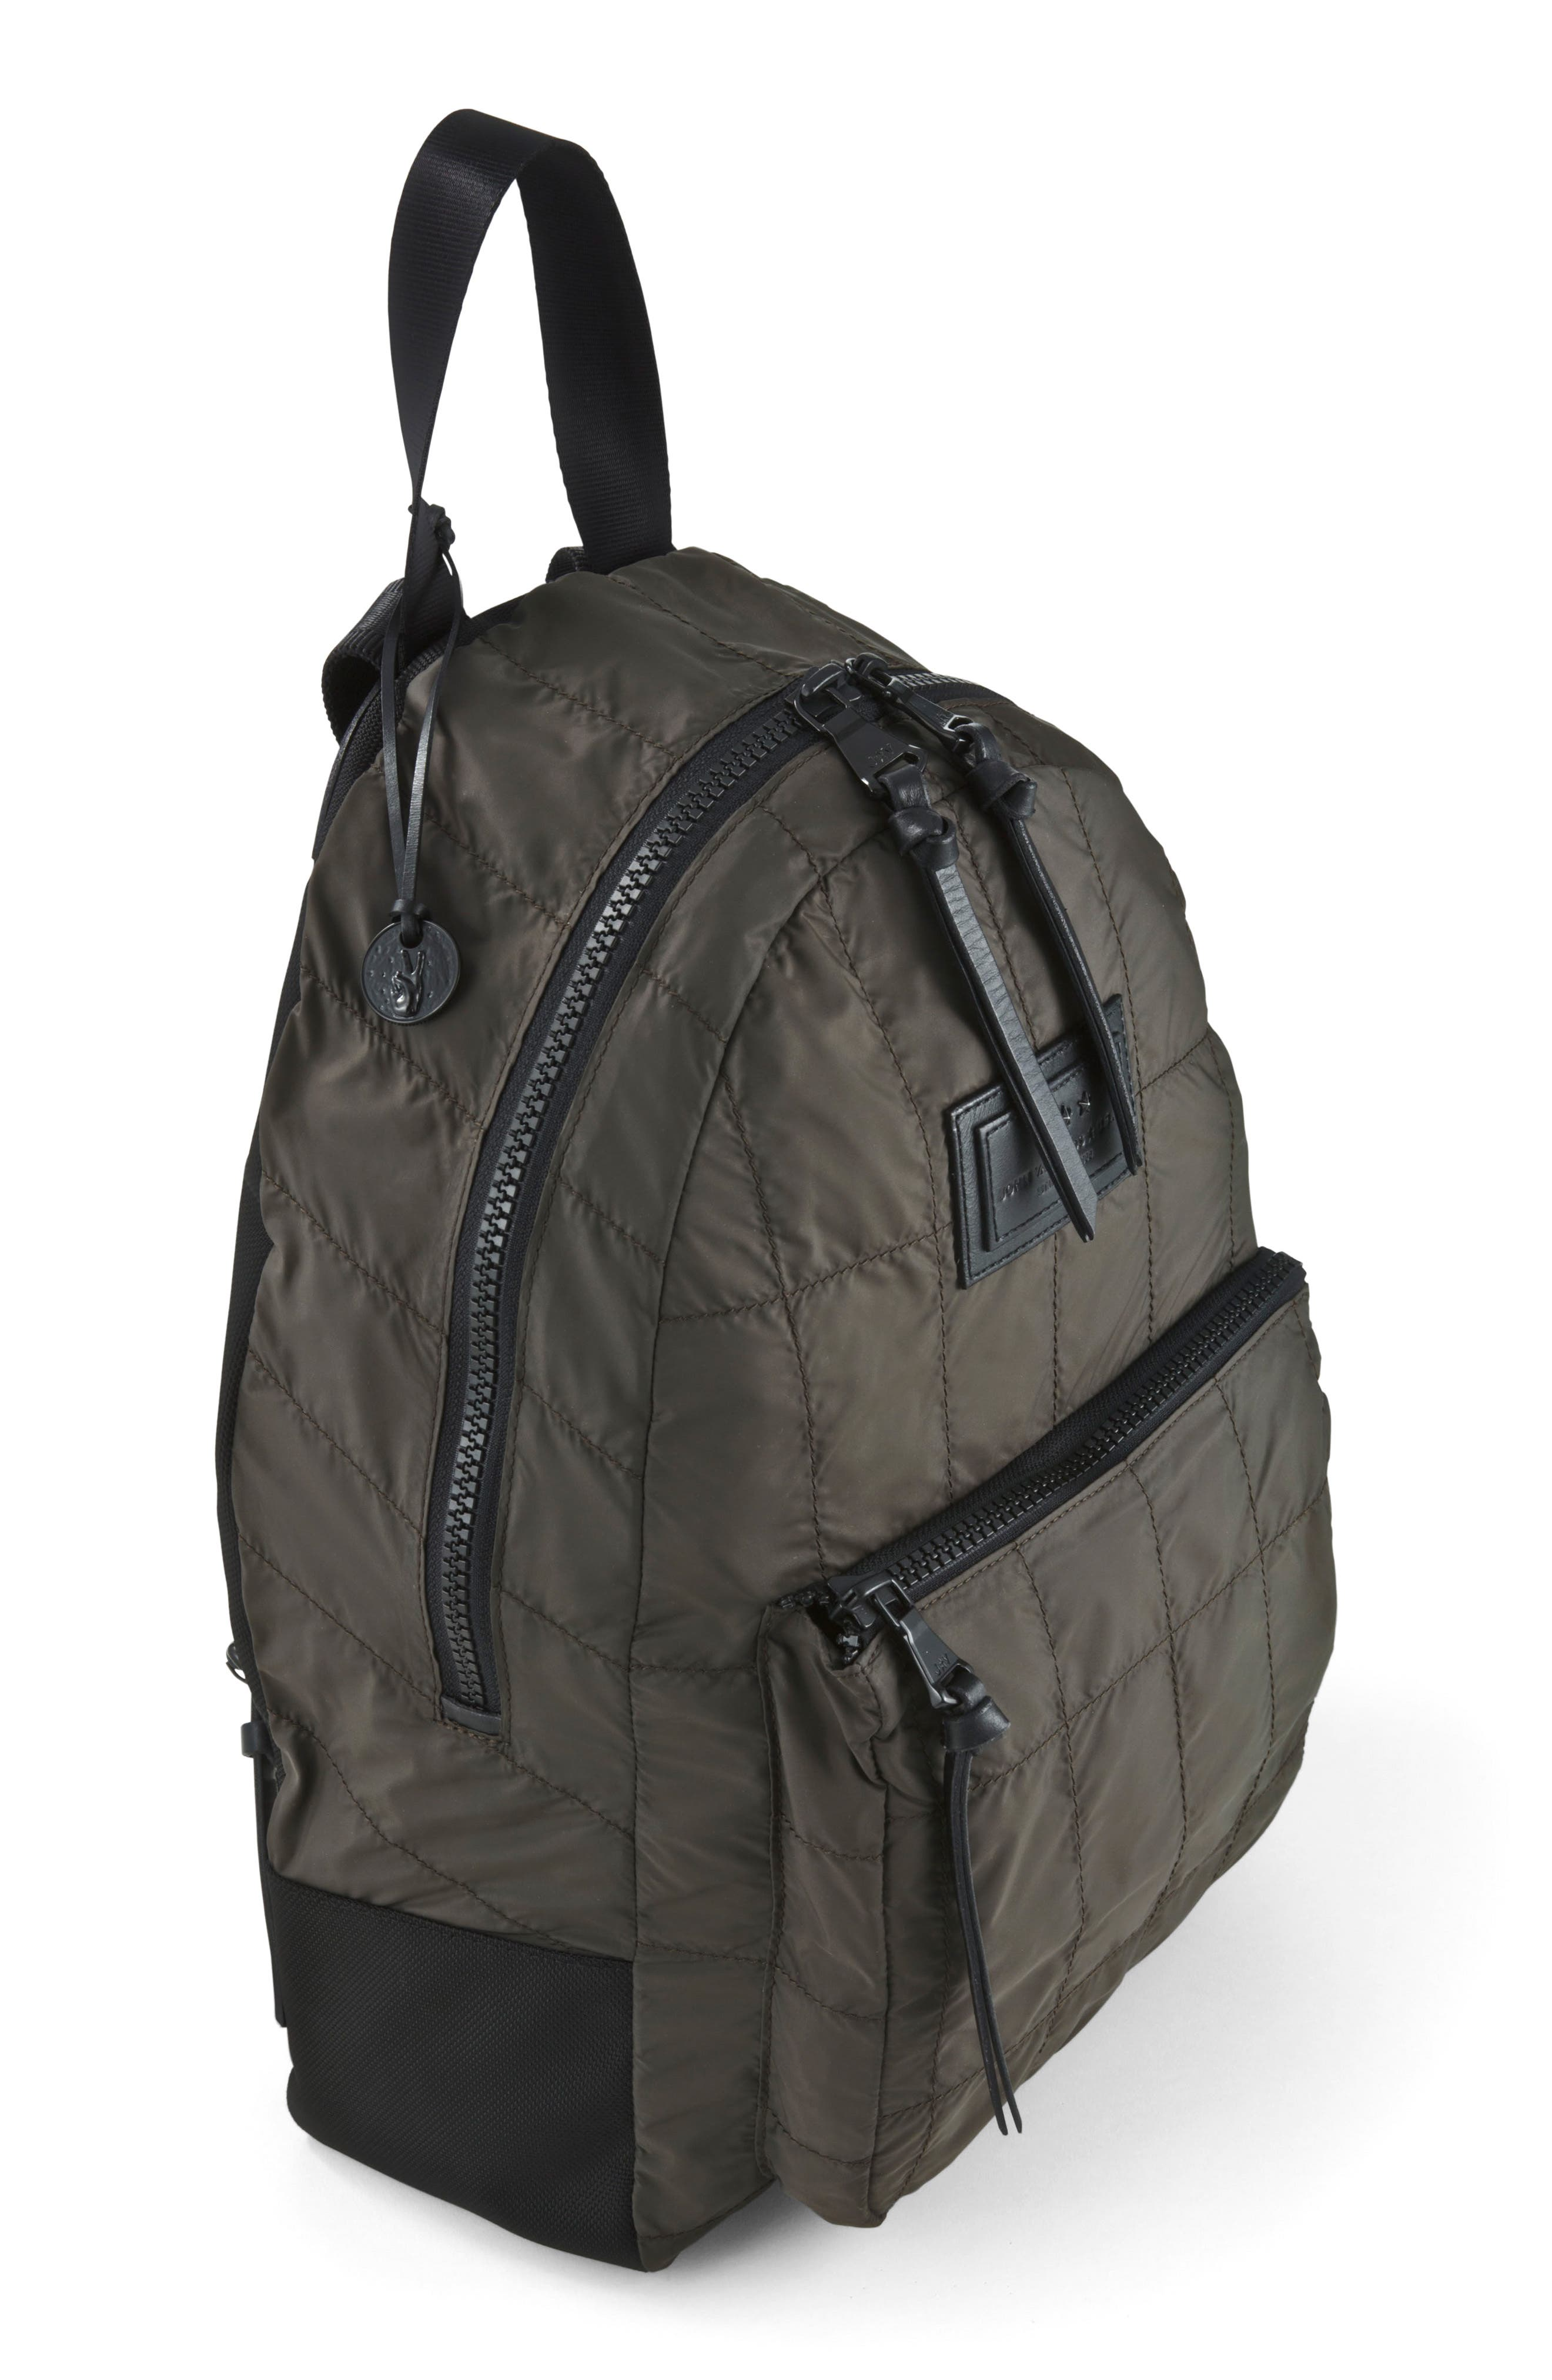 Quilted Nylon Backpack,                             Alternate thumbnail 4, color,                             Army Green